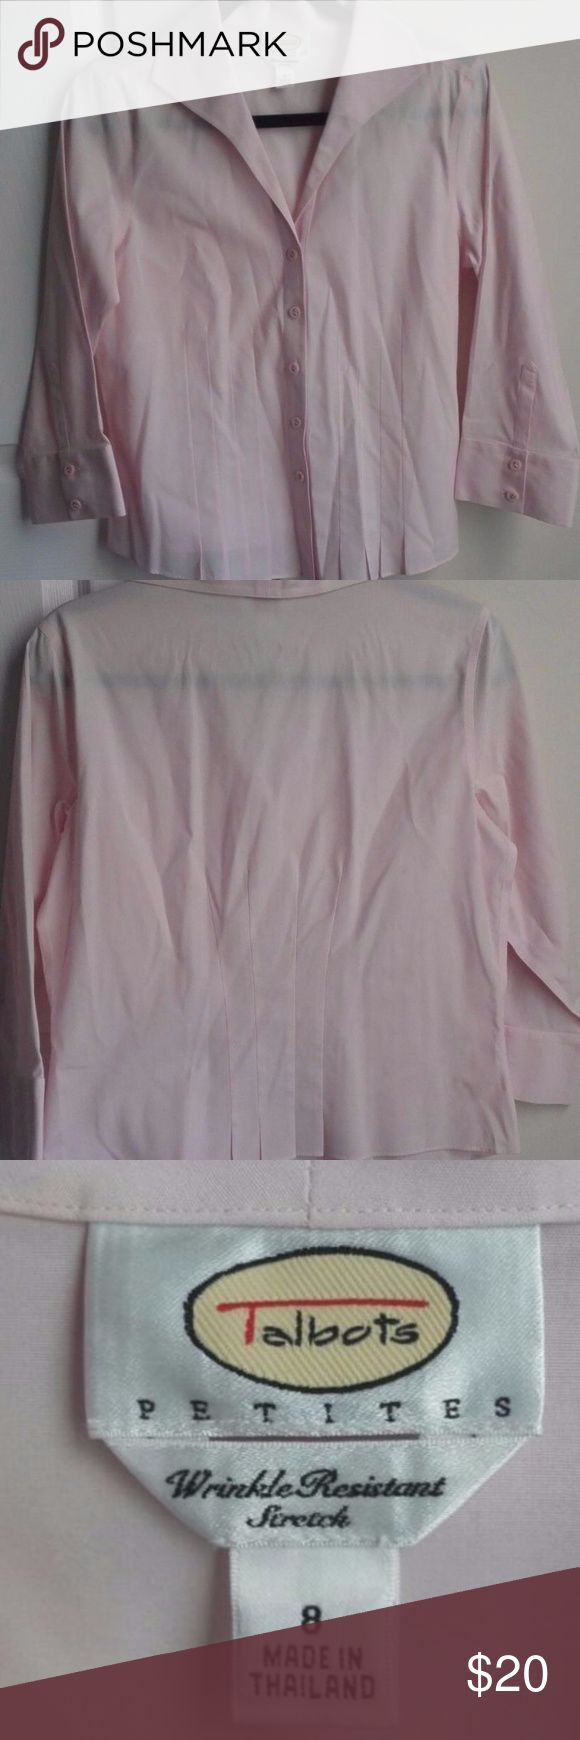 "Talbots Pink Shirt Wrinkle Resistant Stretch Talbots Women's Shirt Wrinkle Resistant Stretch Size 8 Petite Pink 3/4 Sleeve is in very good condition  96% Cotton  4% Lastol  Armpit to armpit 19.5"" Length 22"" Talbots Tops"